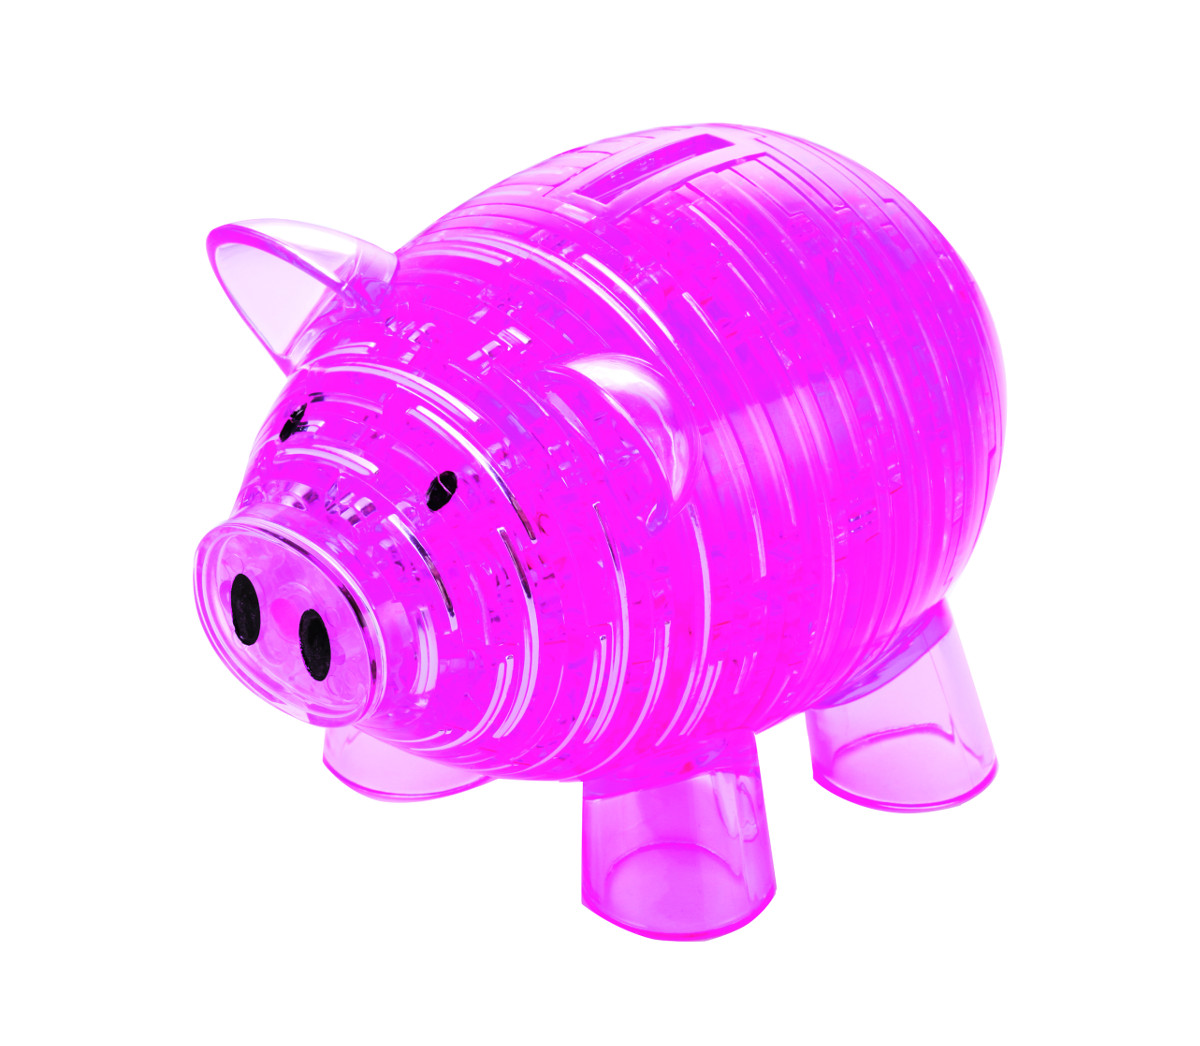 Piggy Bank (Pink) Farm Animals Jigsaw Puzzle